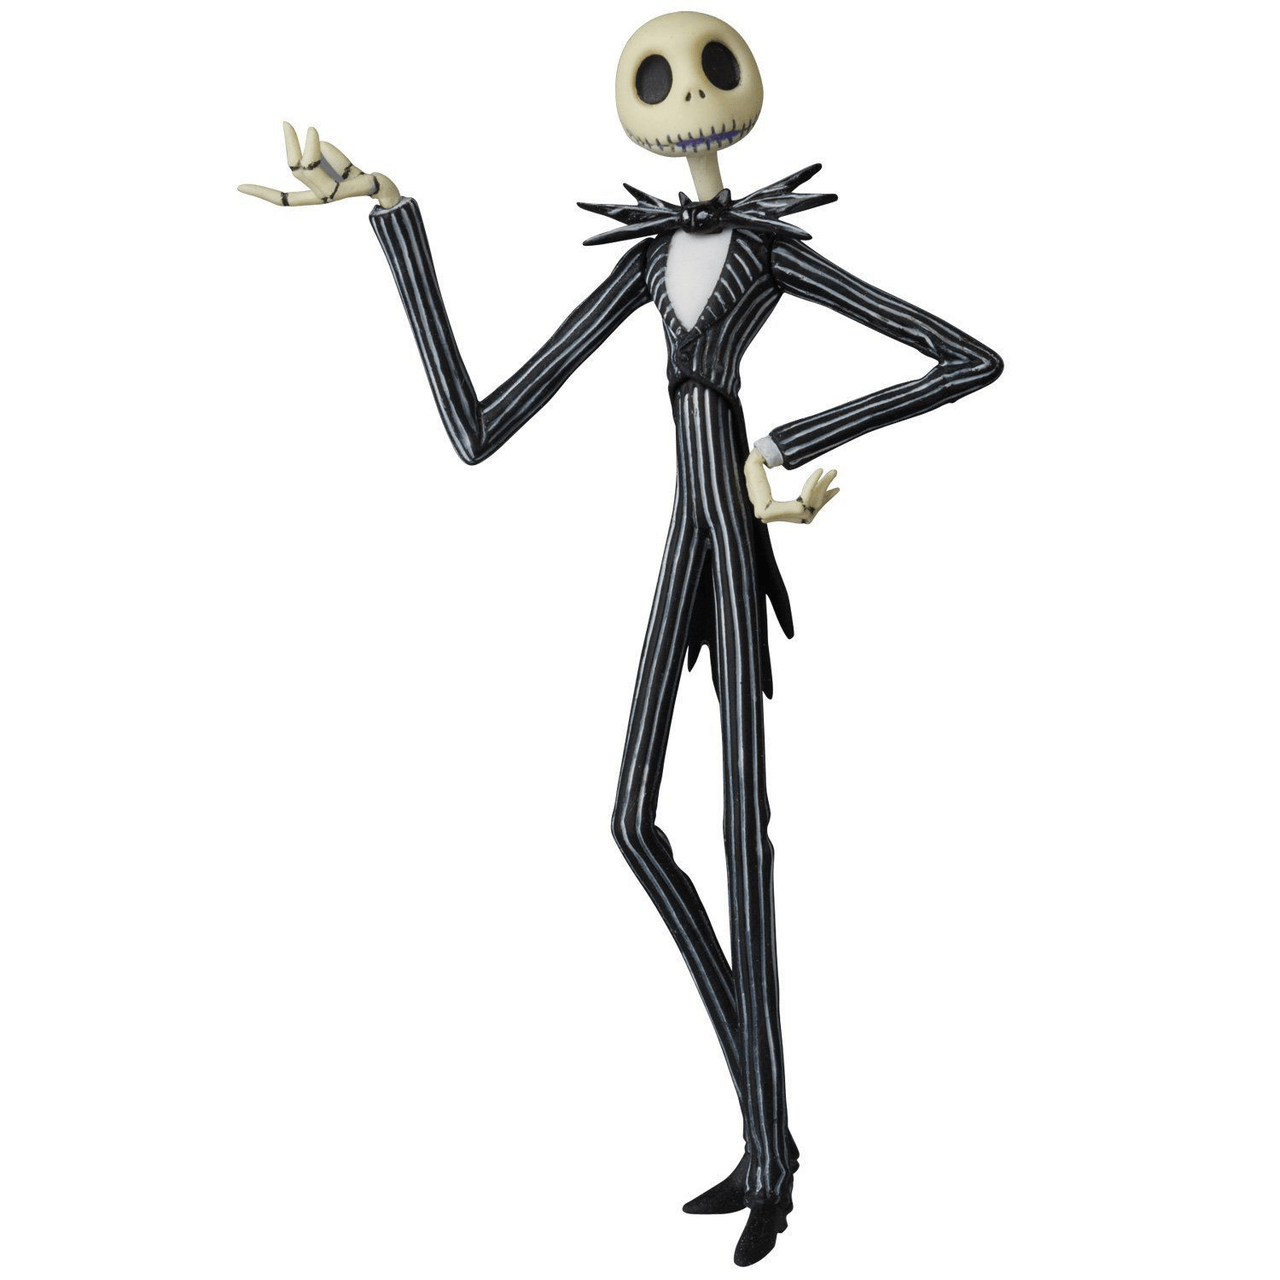 5 Nightmare Before Christmas Figurines To Celebrate The Movie